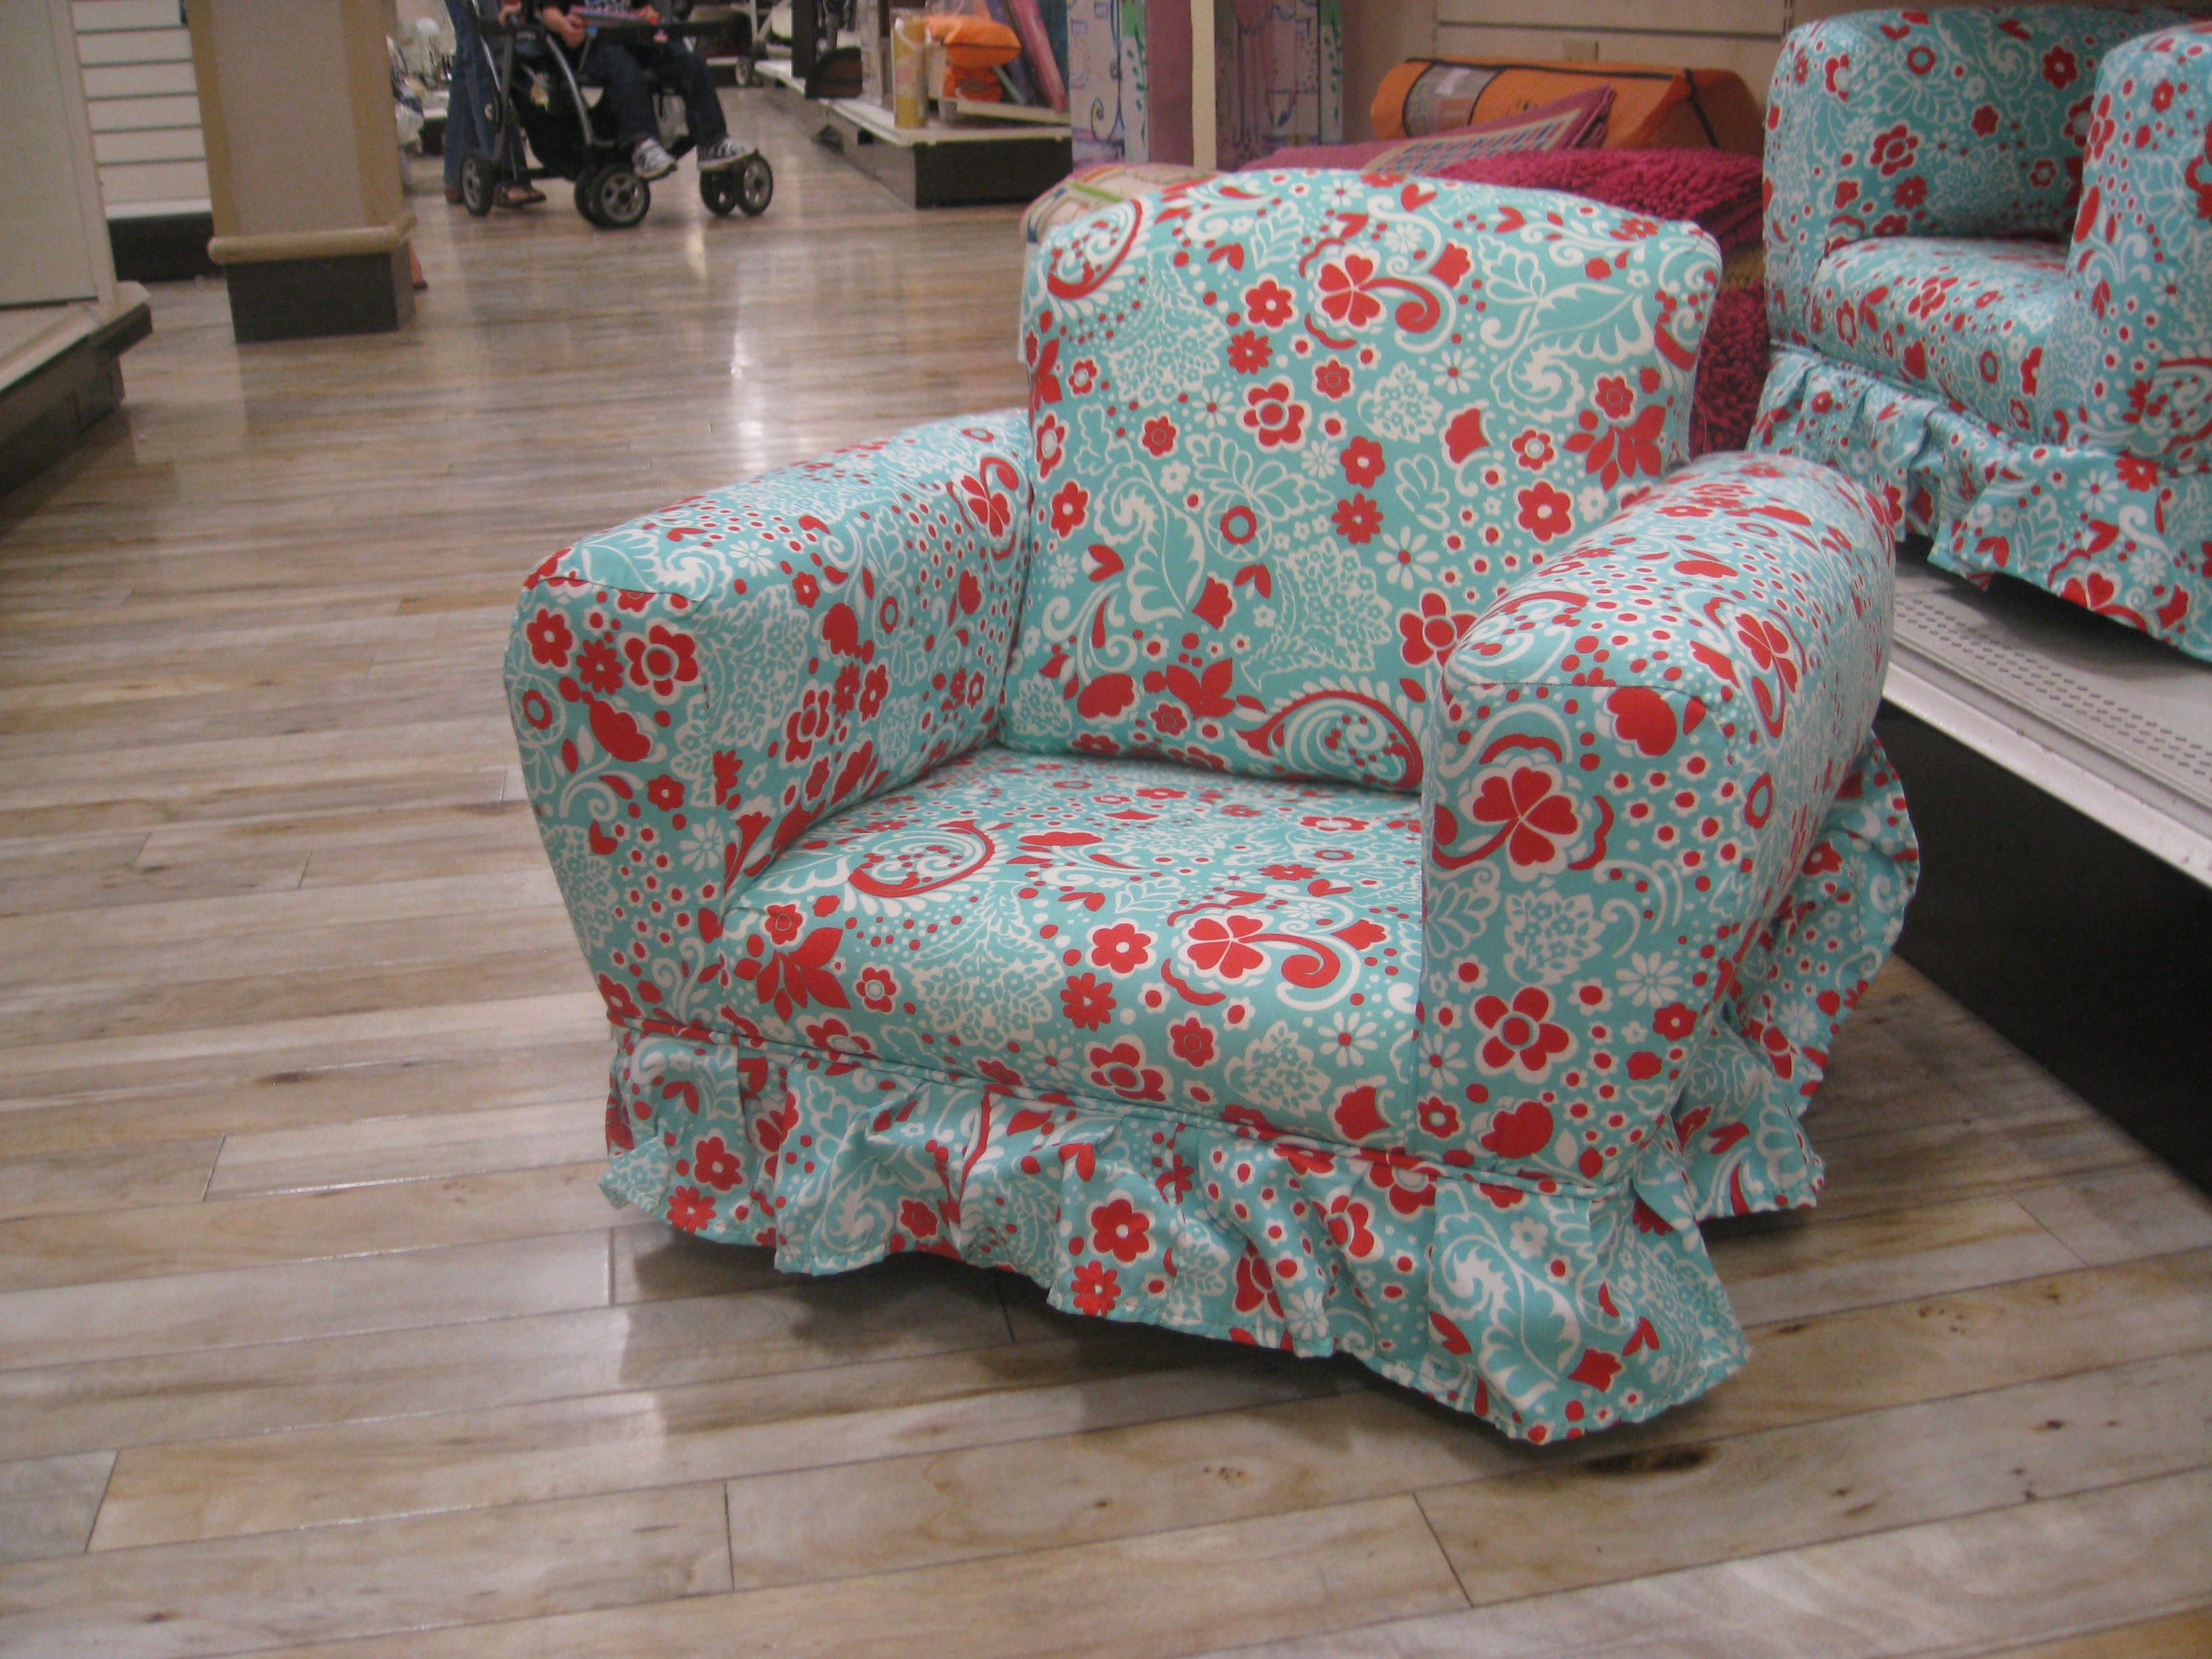 Fabulous Cutest Kids Chair Found At Homesense Burlington Mall Gmtry Best Dining Table And Chair Ideas Images Gmtryco